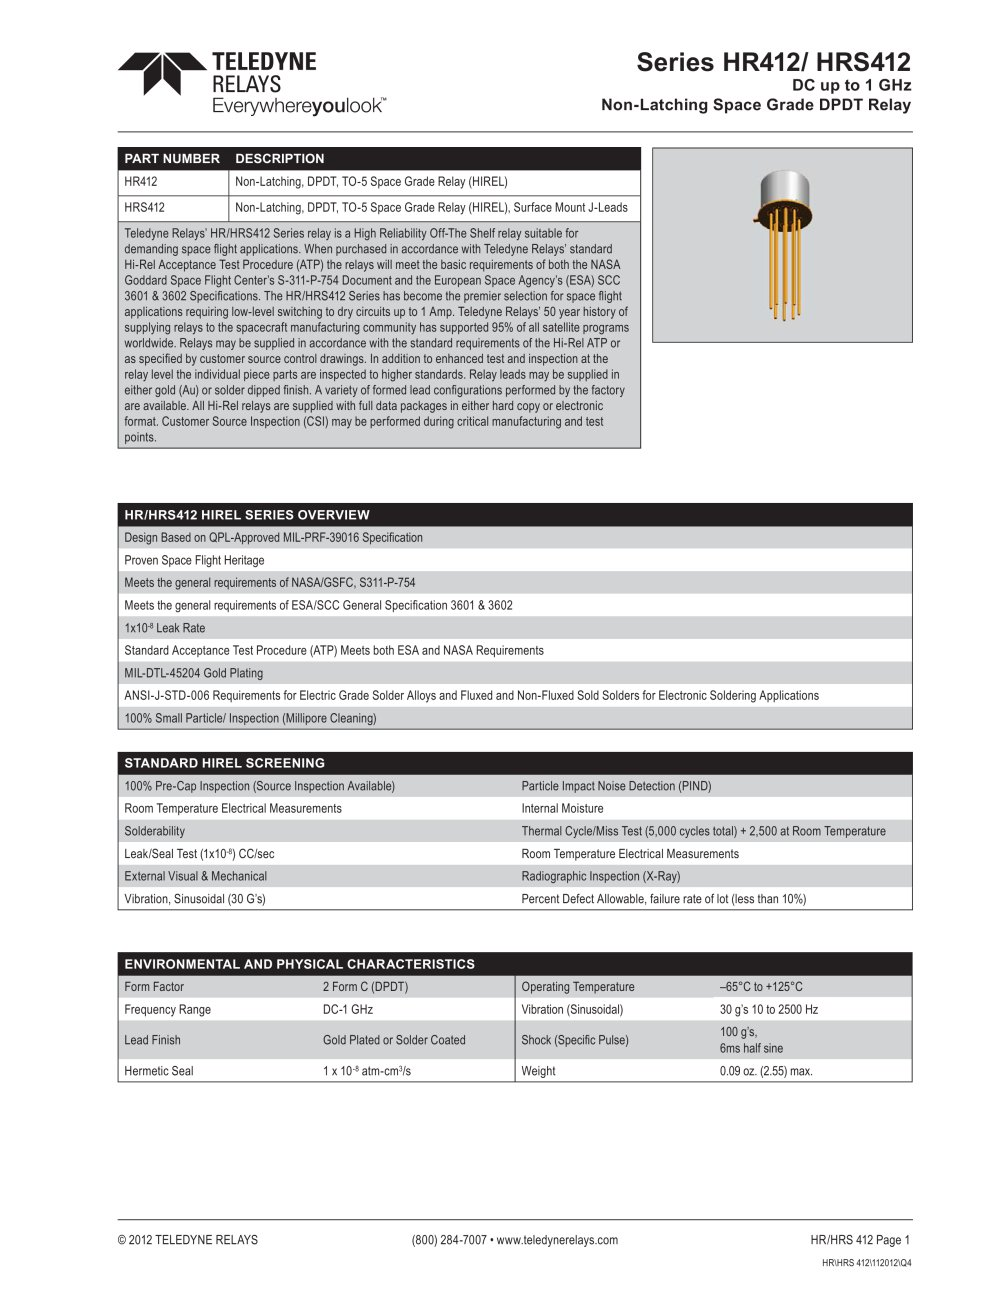 Series Hr412 Hrs412 Teledyne Relays Pdf Catalogue Technical Relay Coil Pickup Voltage 1 10 Pages